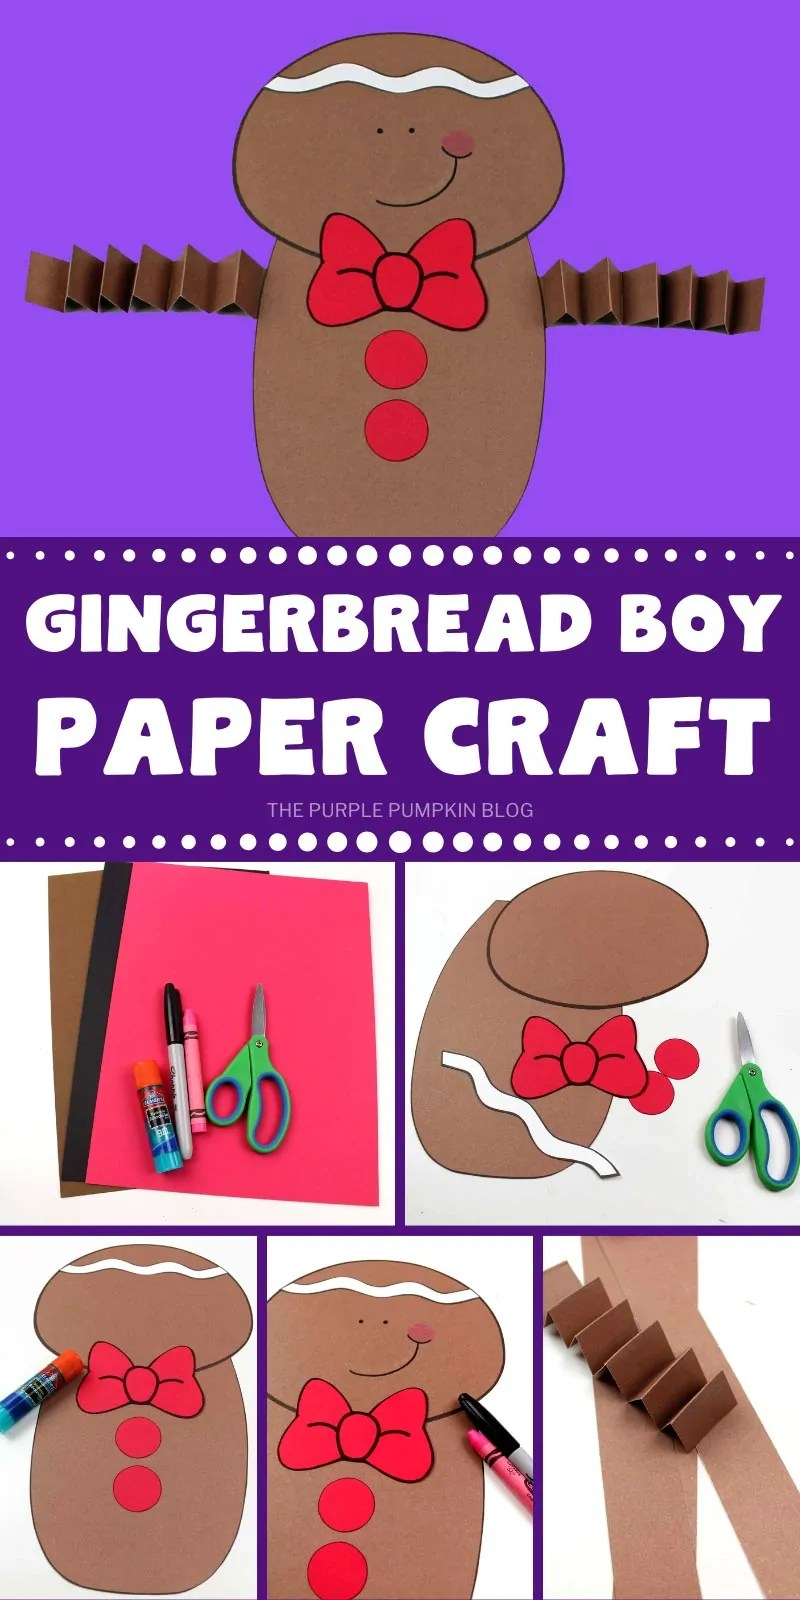 How to make a gingerbread boy paper craft with step by step photos